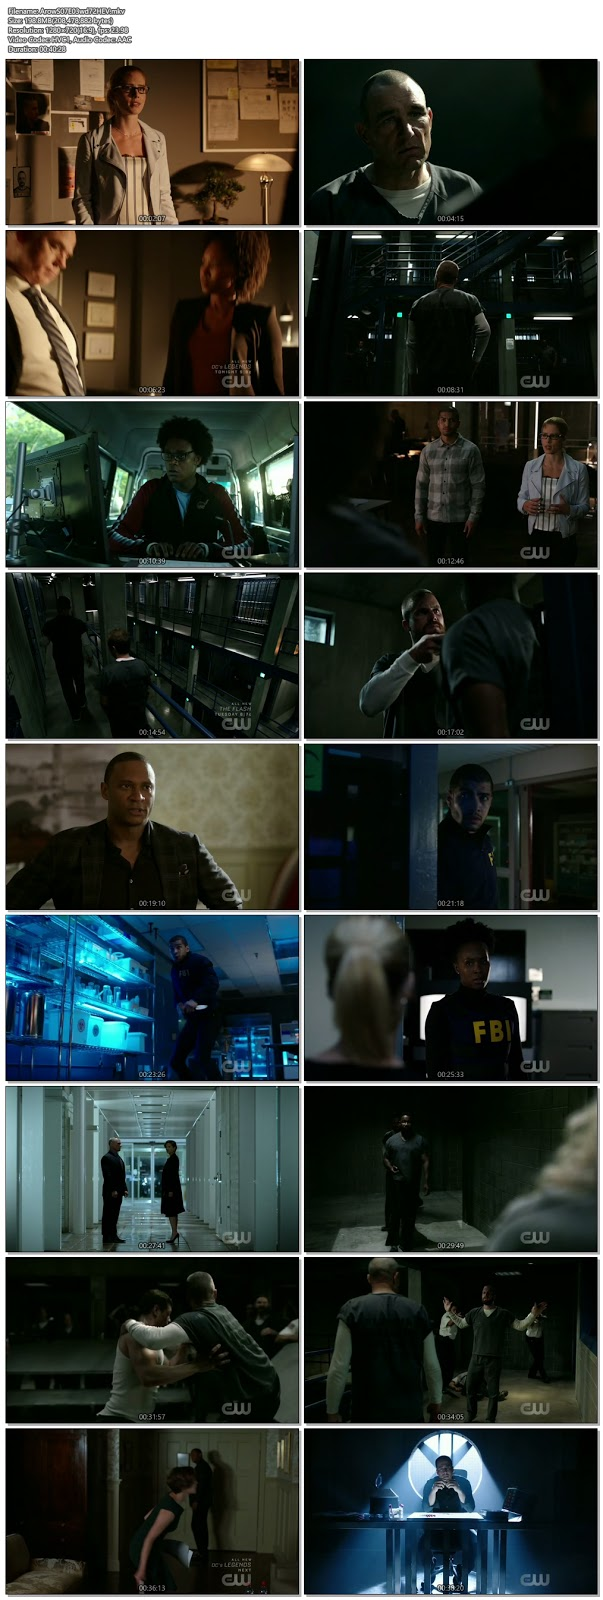 Arrow 2018 S07 Episode 03 720p HDTV 200MB ESub x265 HEVC, hollwood tv series Arrow S07 Episode 03 720p hdtv tv show hevc x265 hdrip 250mb 270mb free download or watch online at world4ufree.vip